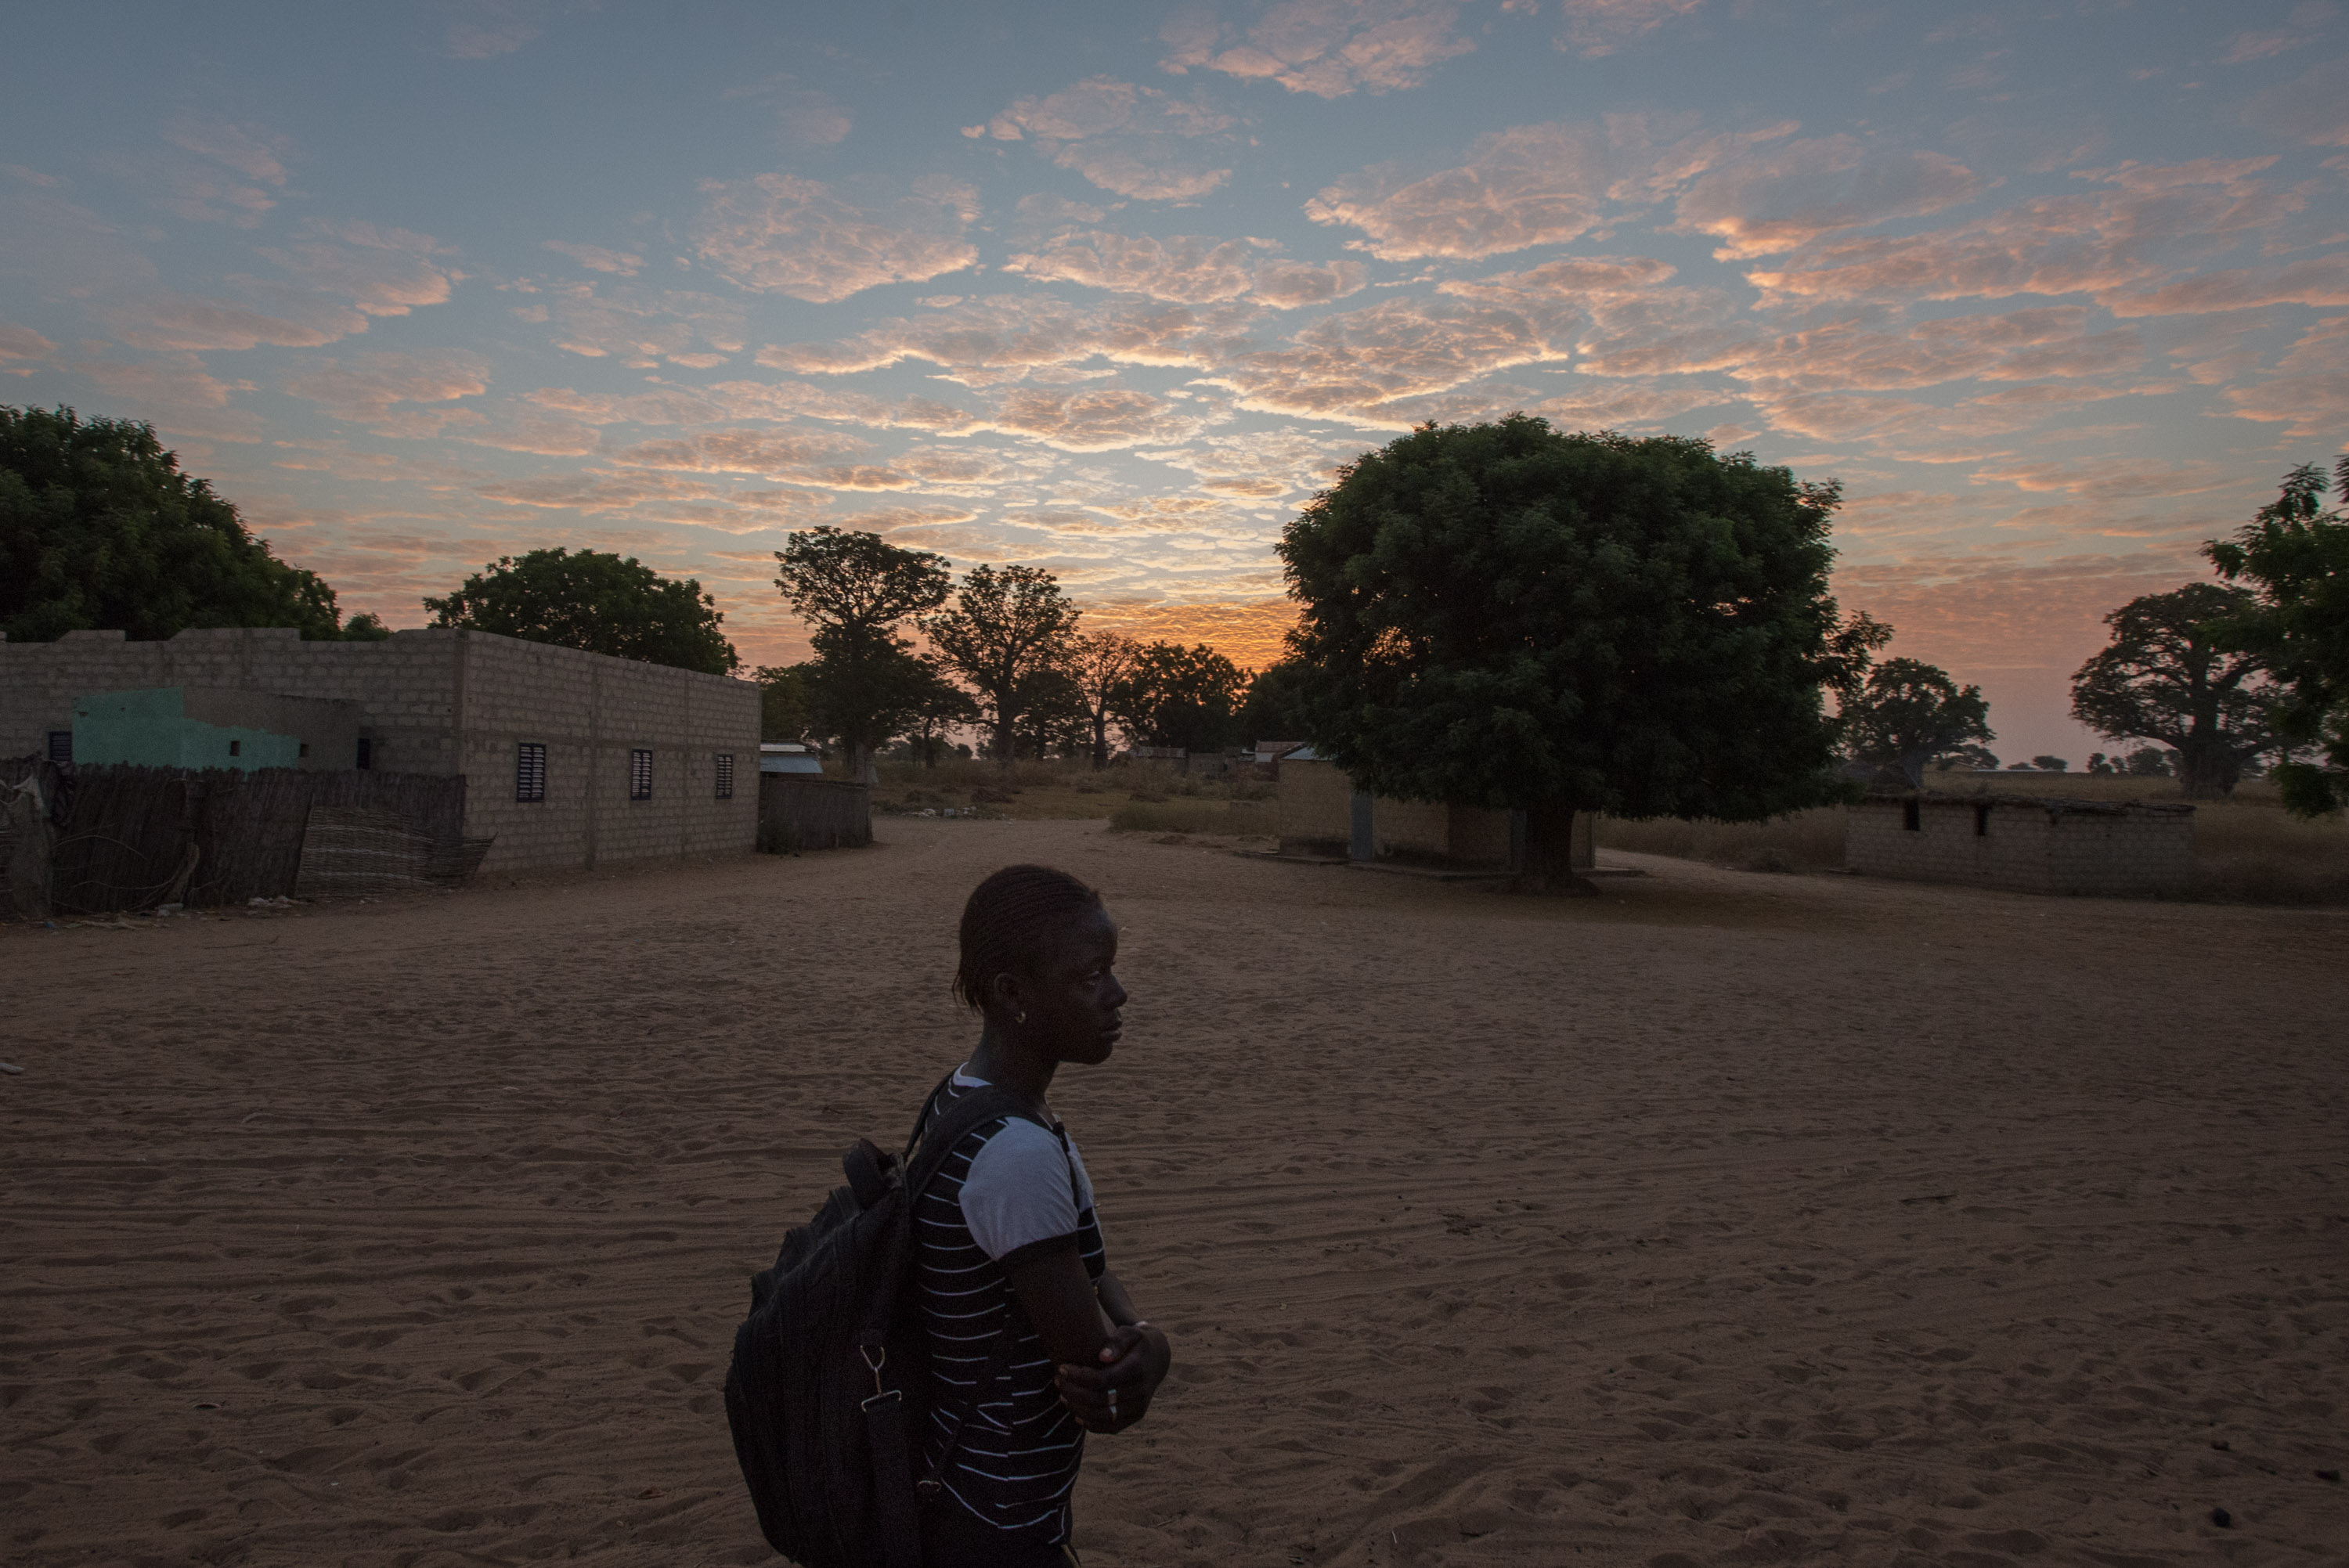 Marie's daughter Fatou, backpack in tow, sets off early one morning for school.